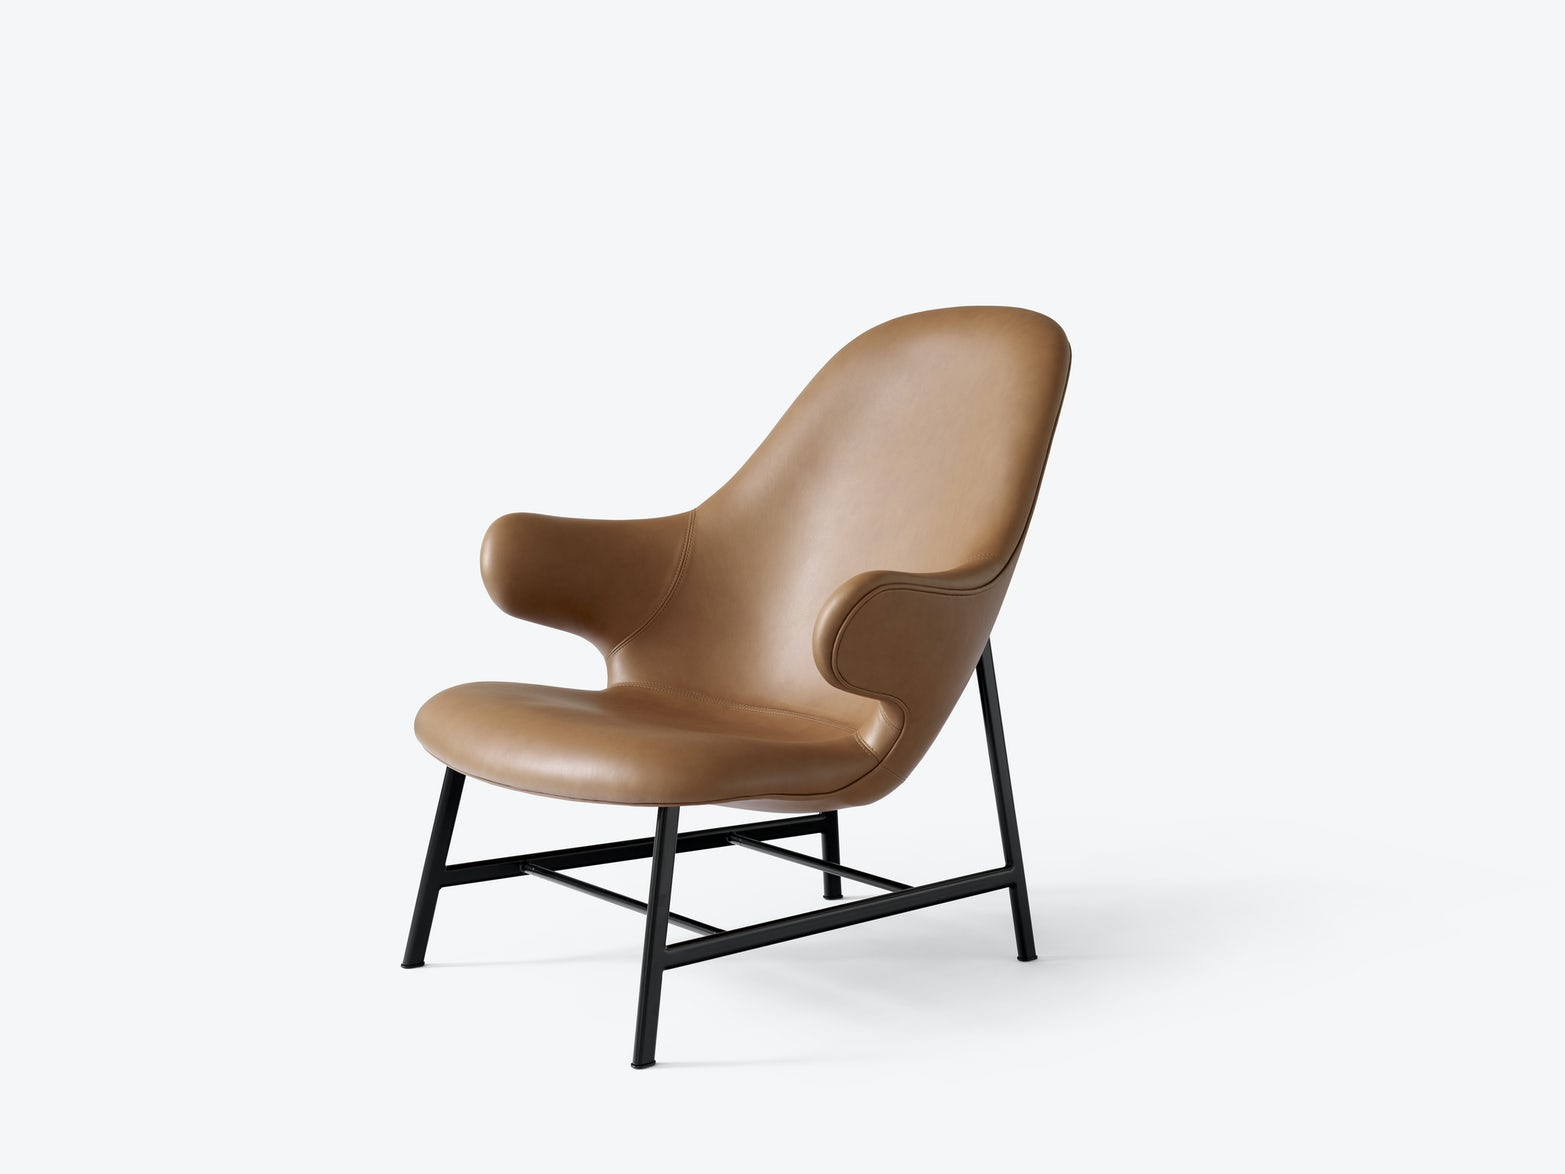 Catch lounge chair jh13 jaime hayon and tradition 8